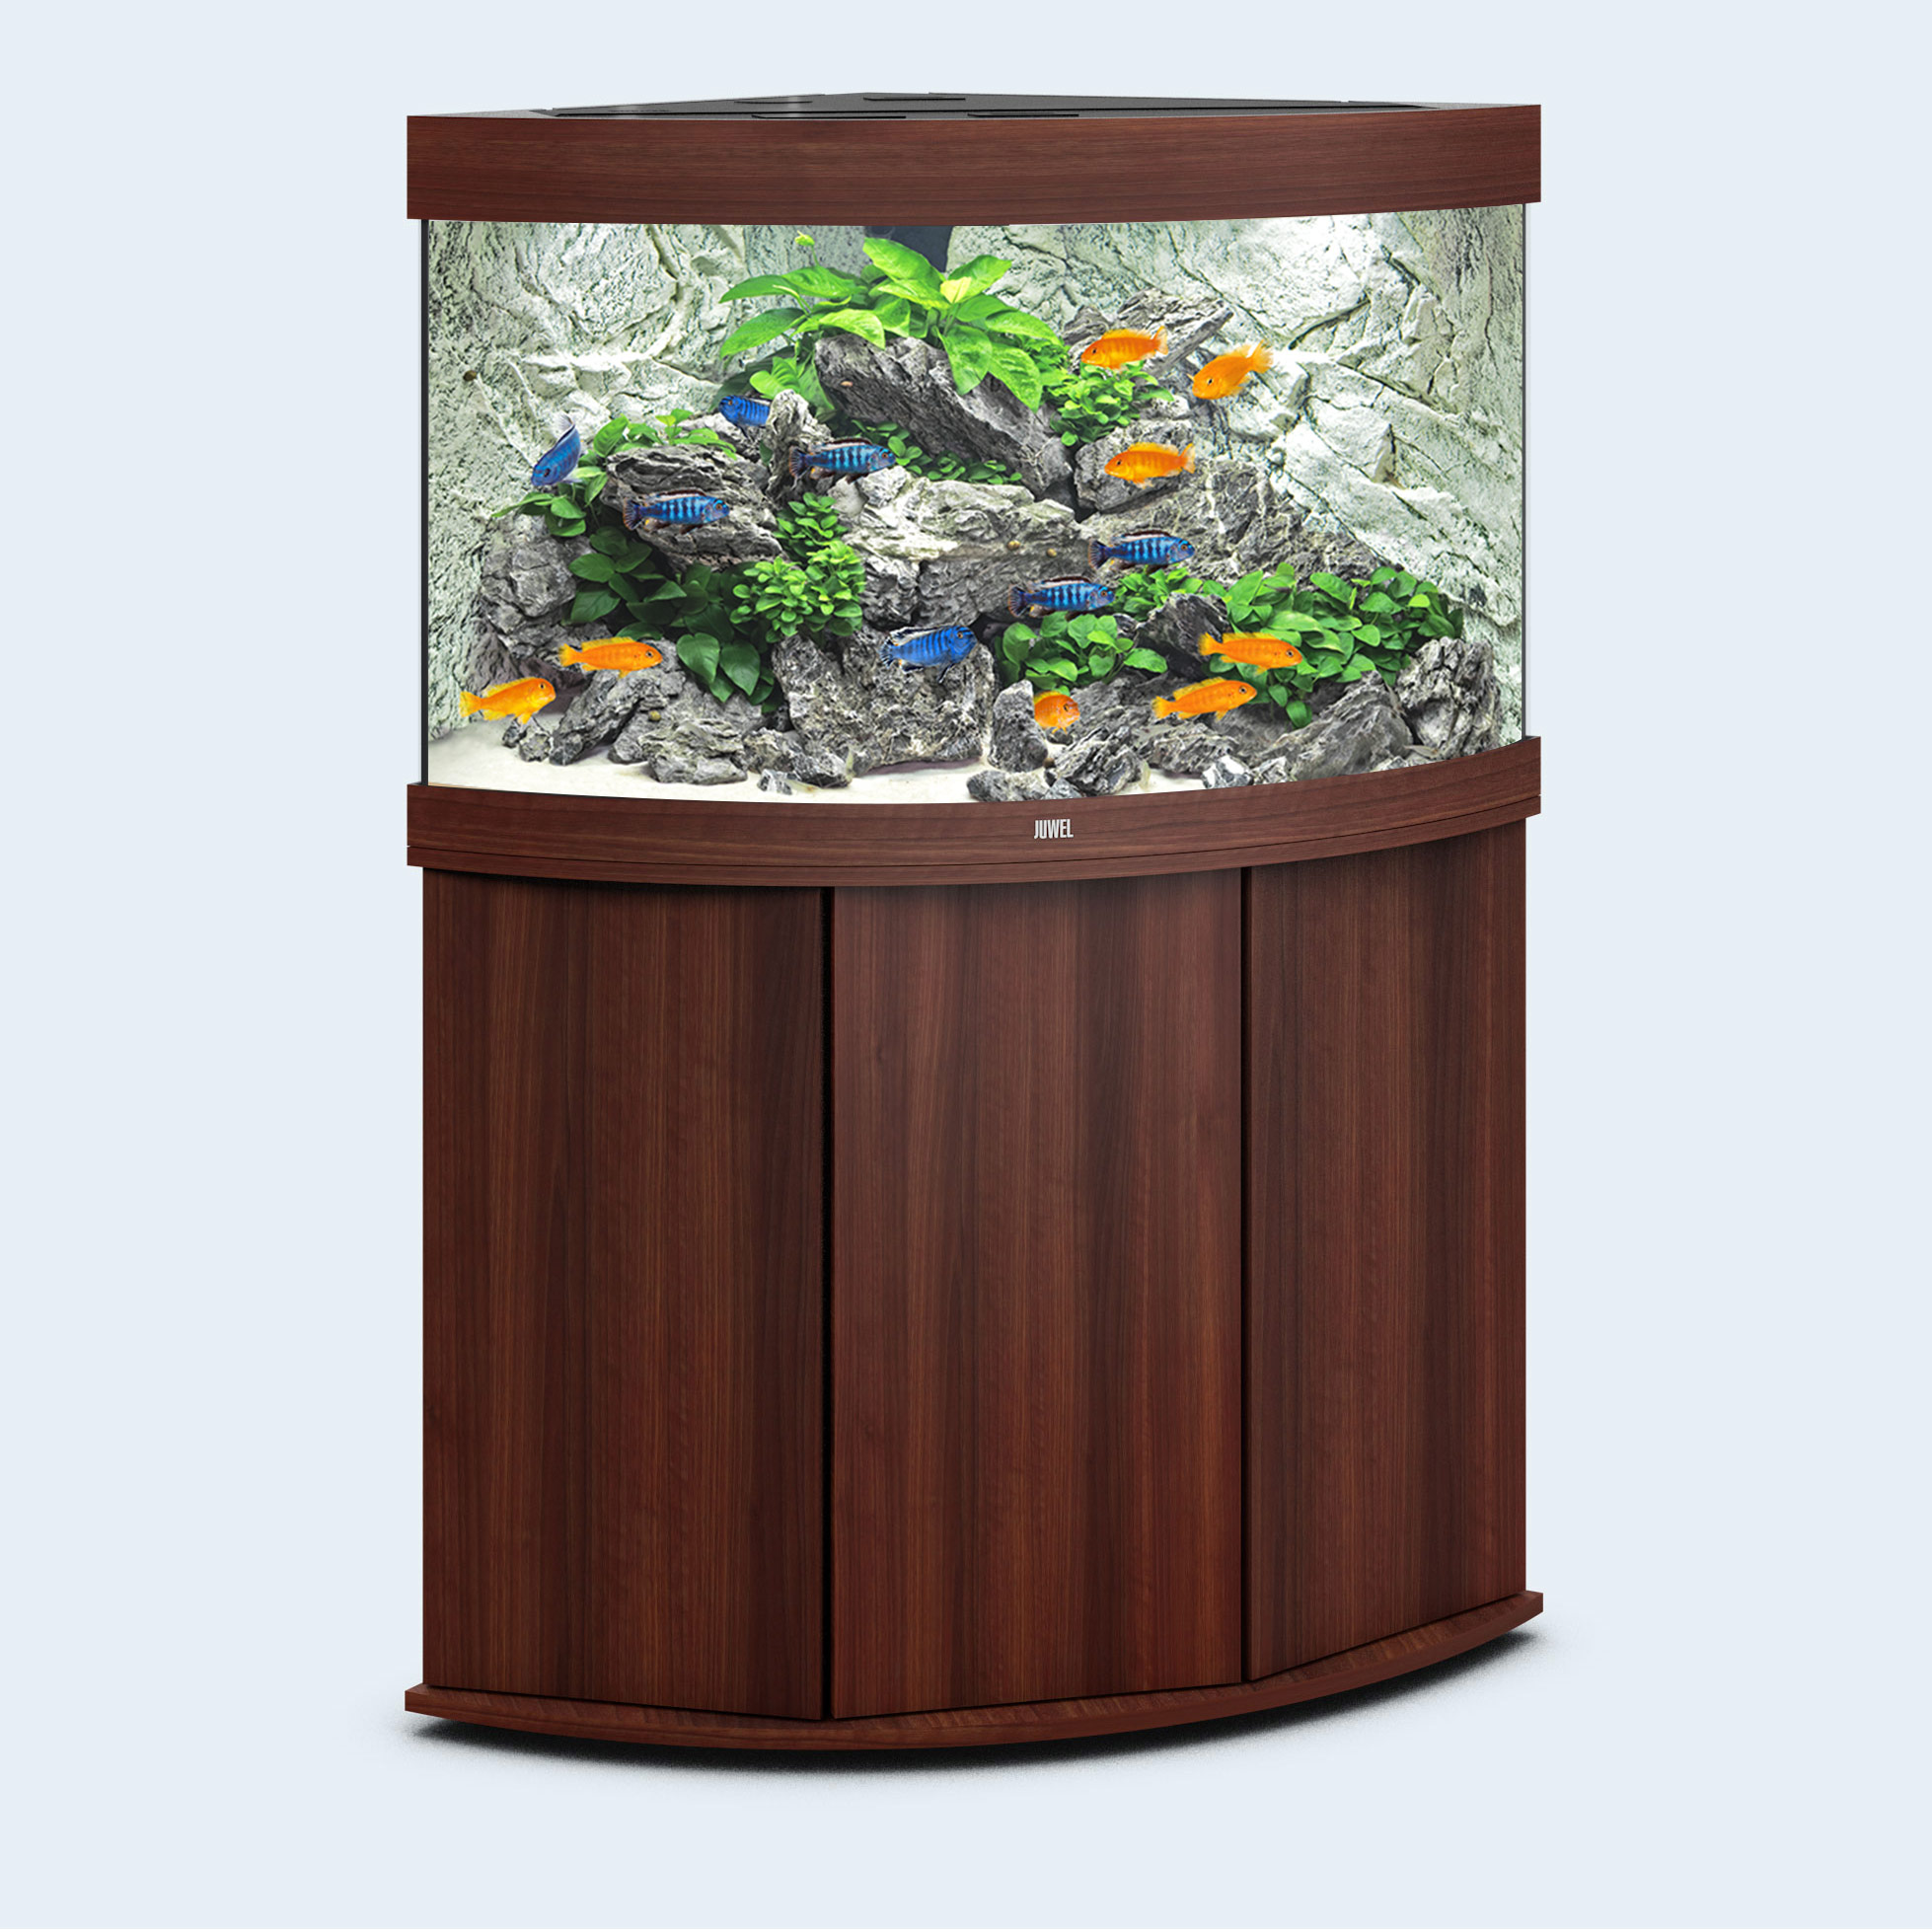 Juwel aquarium trigon 190 for Aquarium juwel